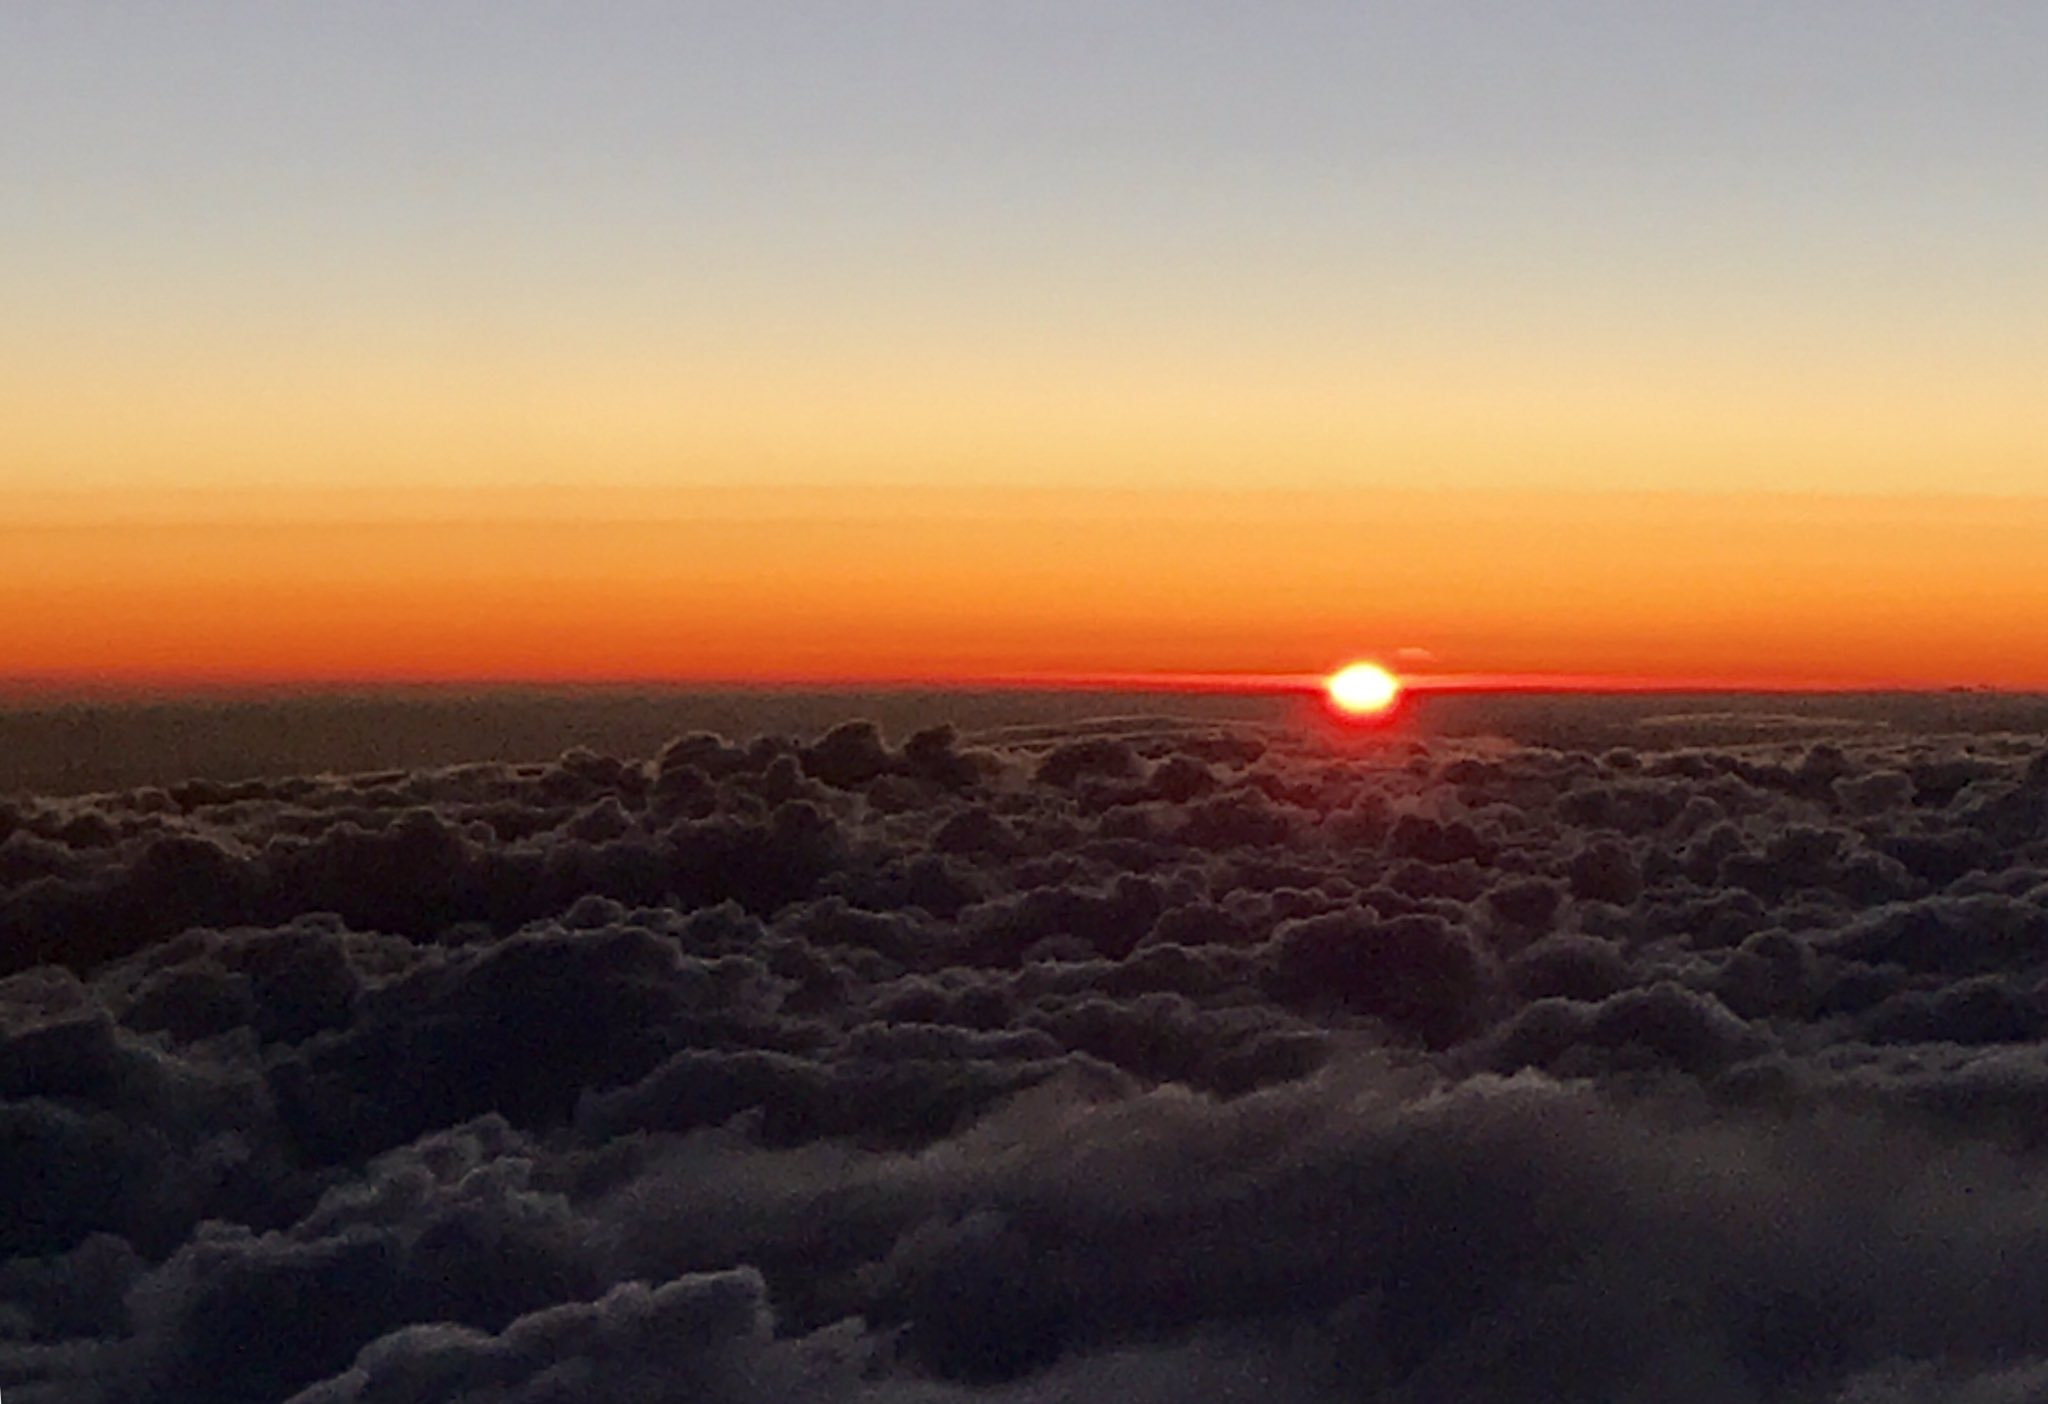 Sunset from the skies. Hello San Francisco!  #ETINSIIA https://t.co/I5CU97axFt